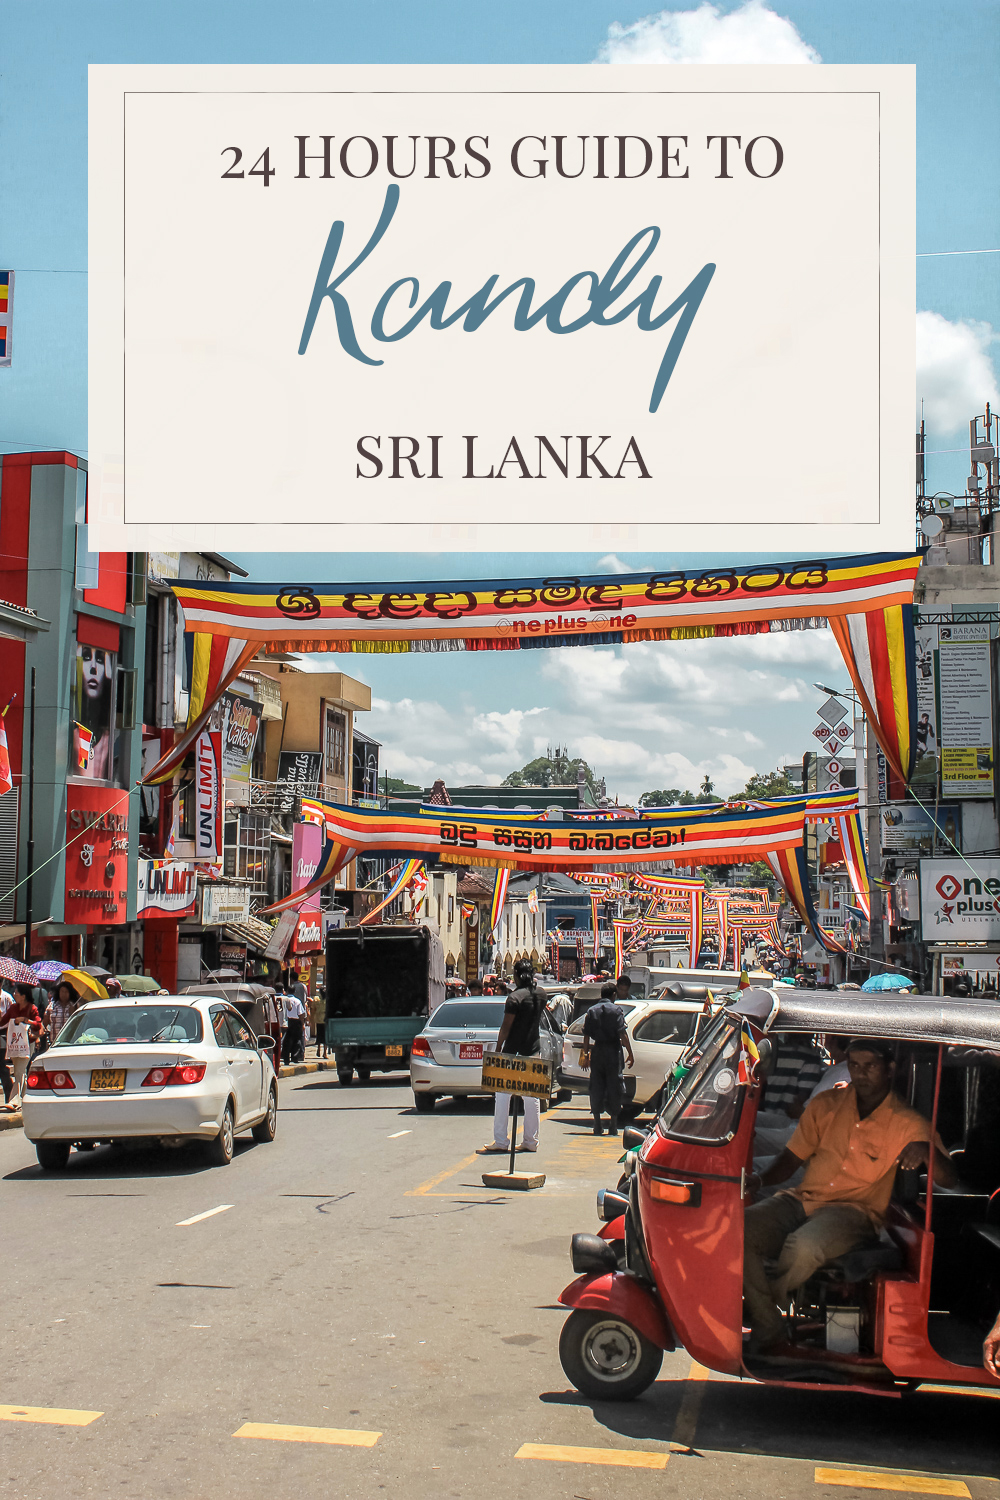 24 HOURS Kandy guide